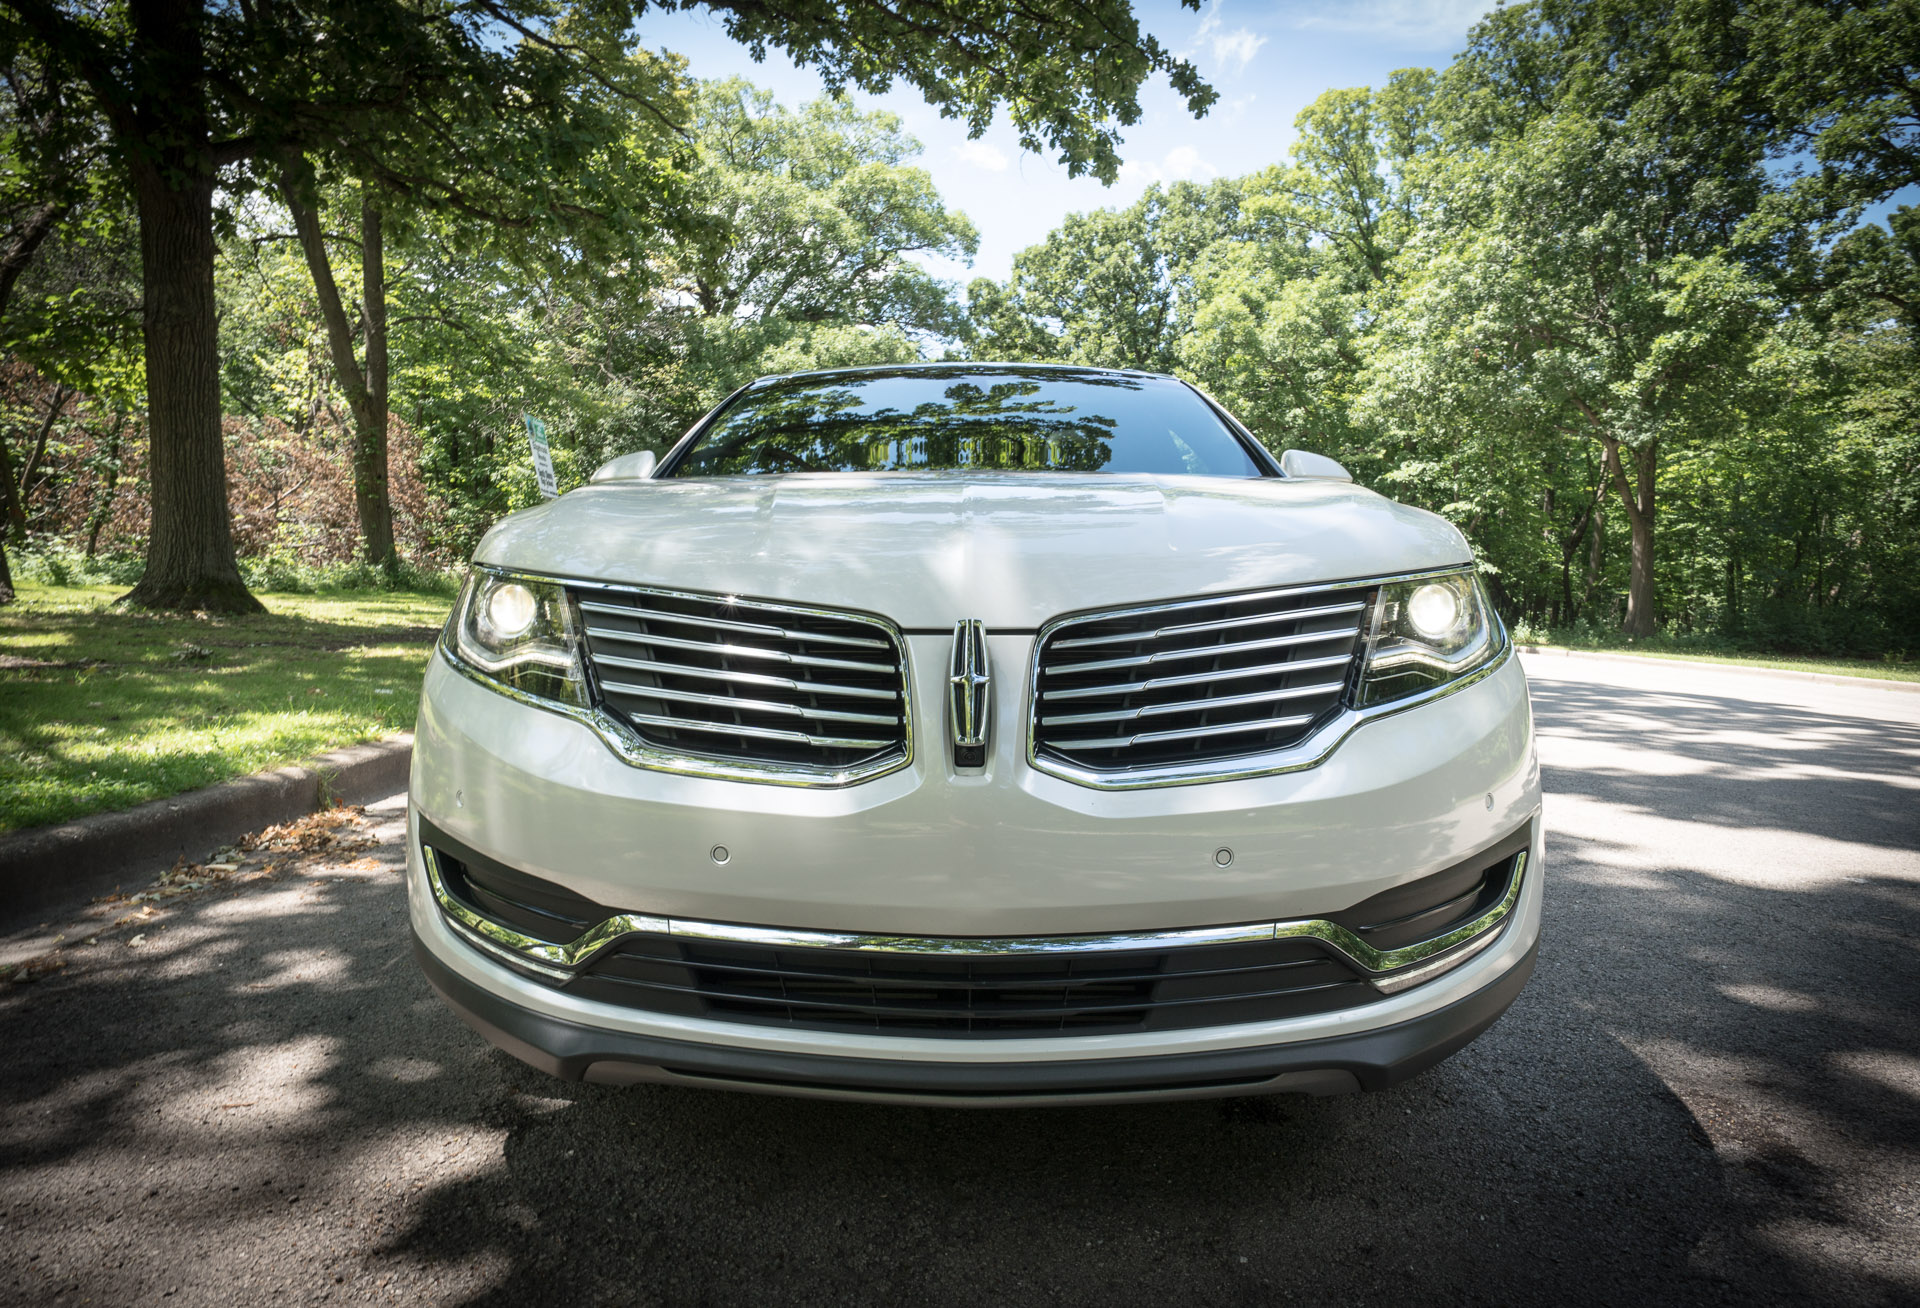 Review 2016 Lincoln MKX 2 7 AWD 95 Octane